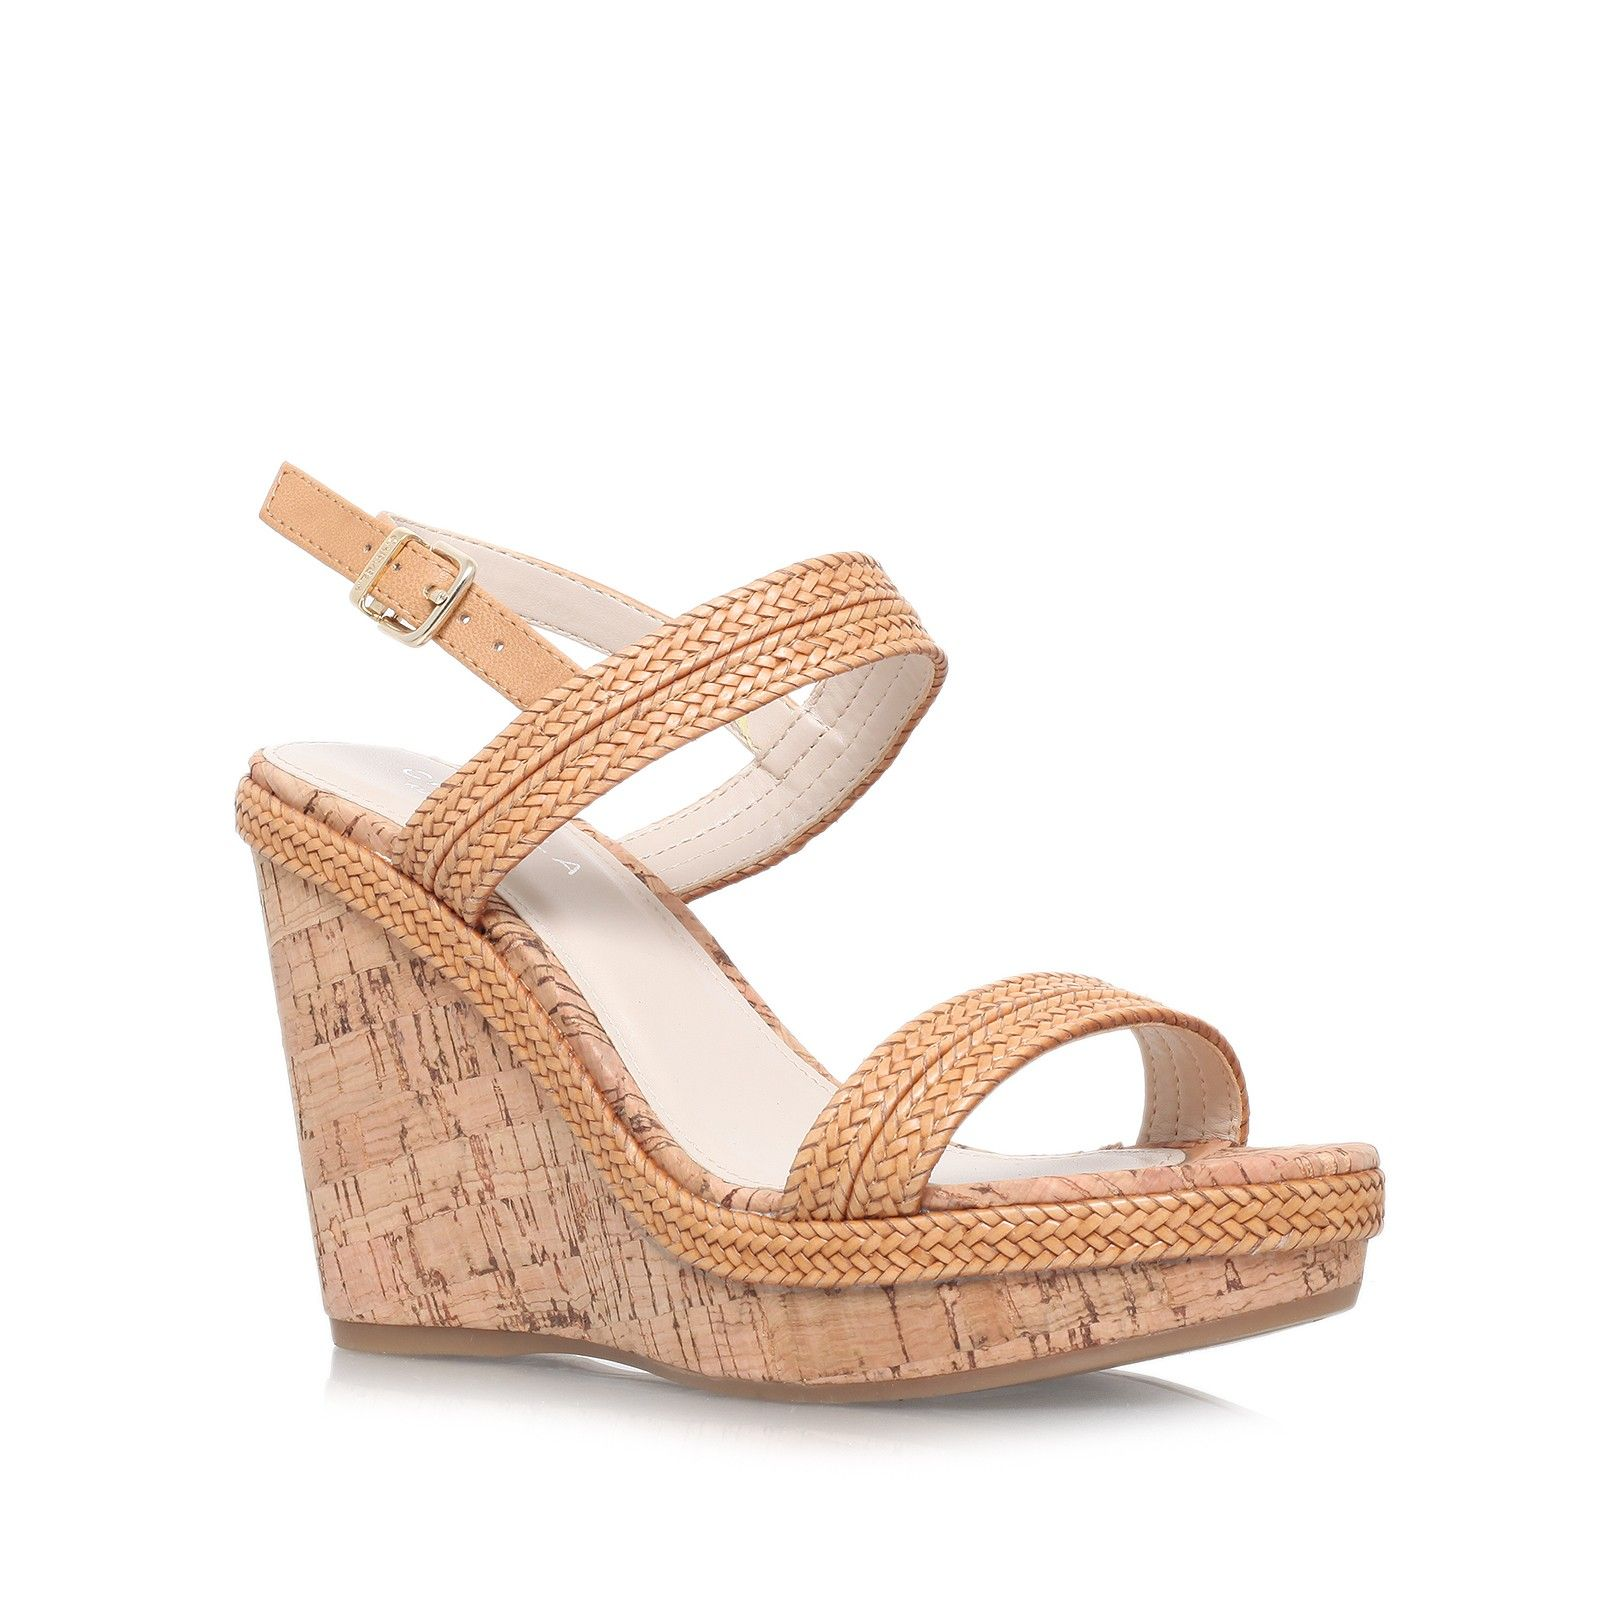 For the Stuart Weitzman Minx this is the 'Kay' by Kurt Geiger, only · Tan  ShoesWomen's ...